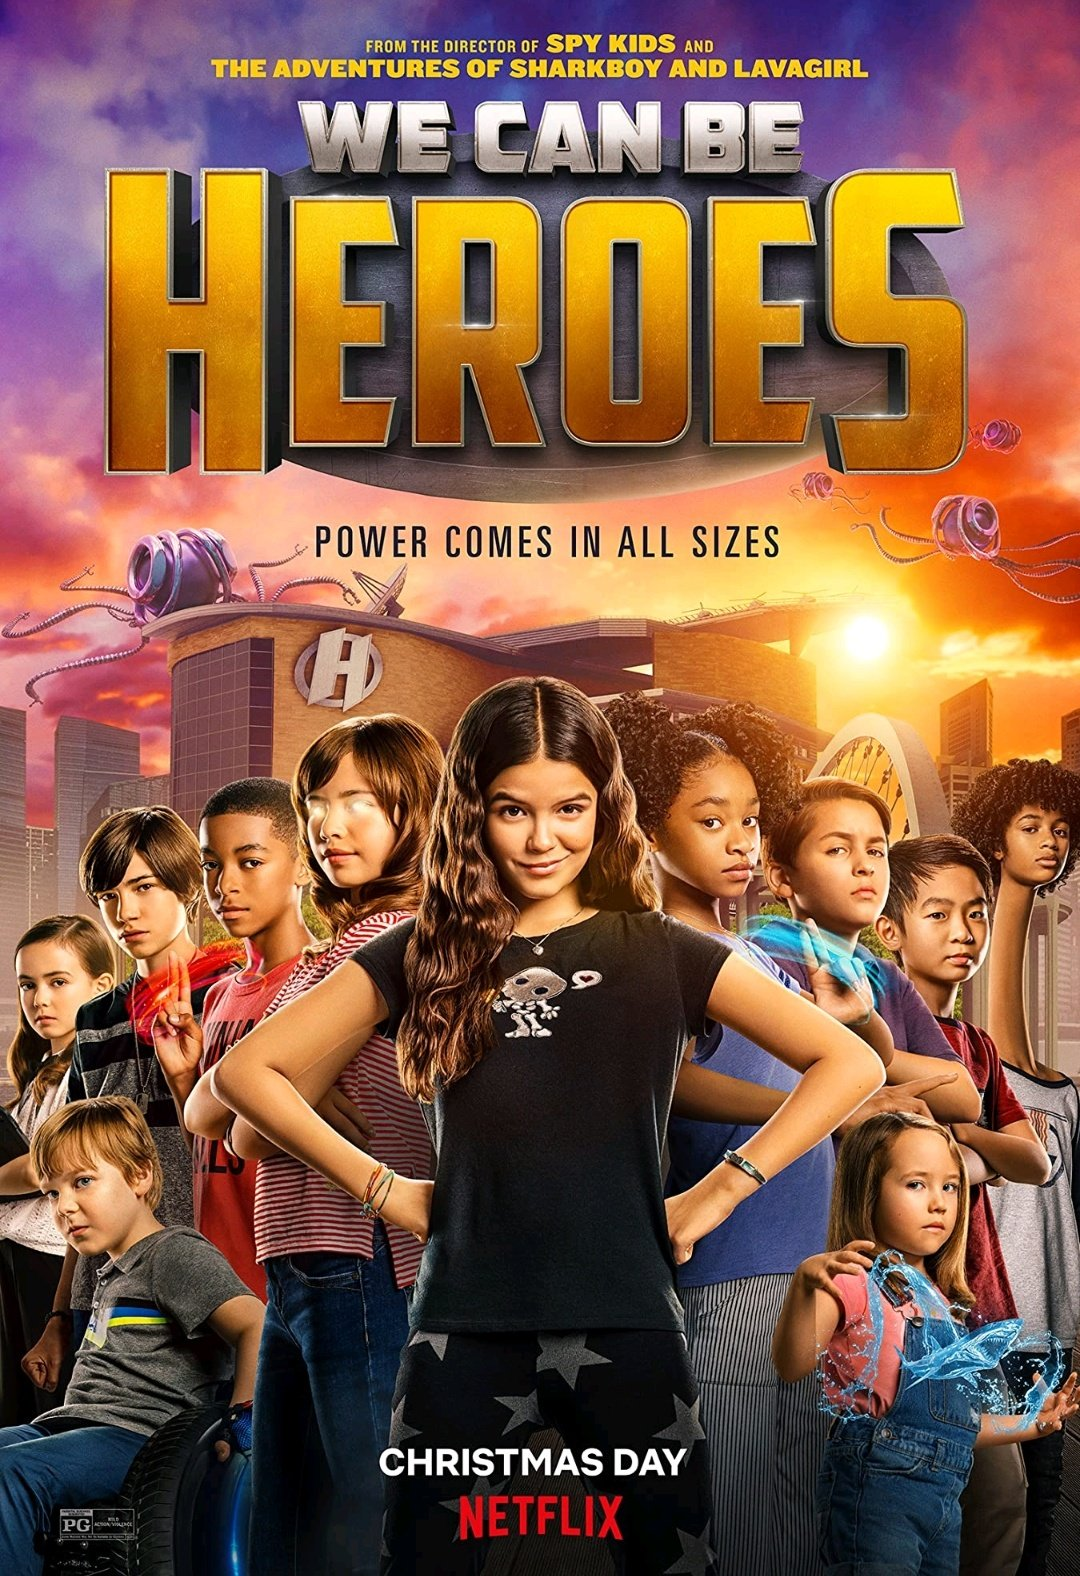 Daniel Irawan On Twitter 381 We Can Be Heroes 2020 Robert Rodriguez Superkids Ensemble The Next Gen Academy Blend Perfectly As A Spin Stand Alone Sequel To Sharkboy Lavagirl Wecanbeheroes Strikes